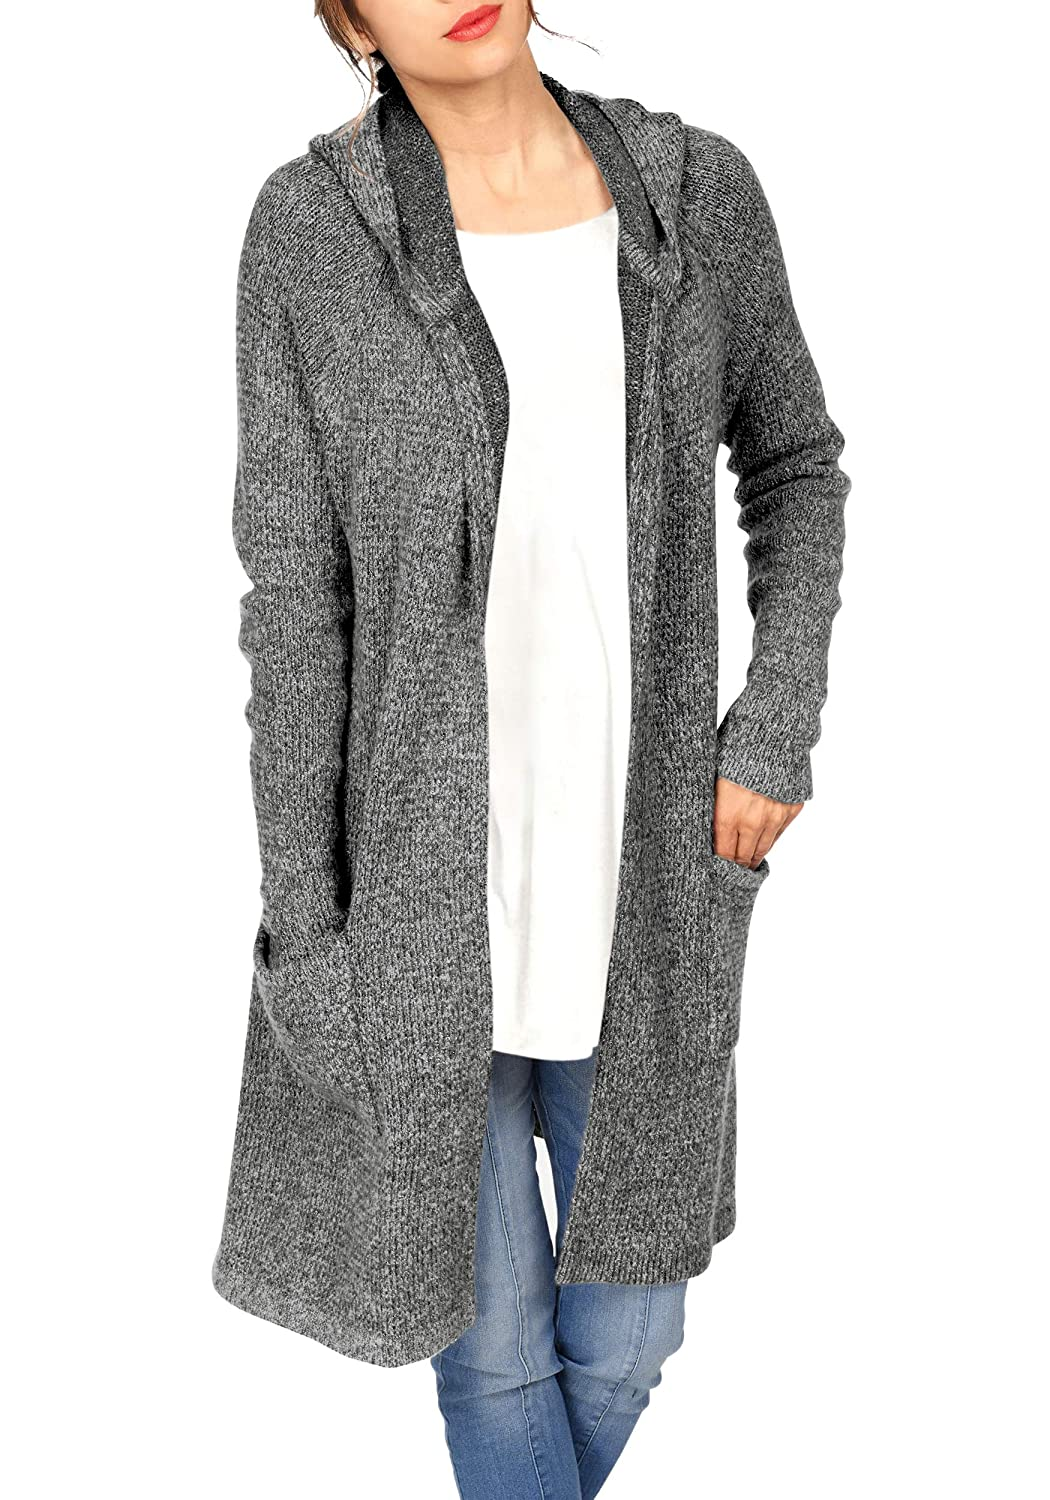 H HIAMIGOS Women's Casual Long Sleeved Thick Open Front Sweater Cardigans Pocket